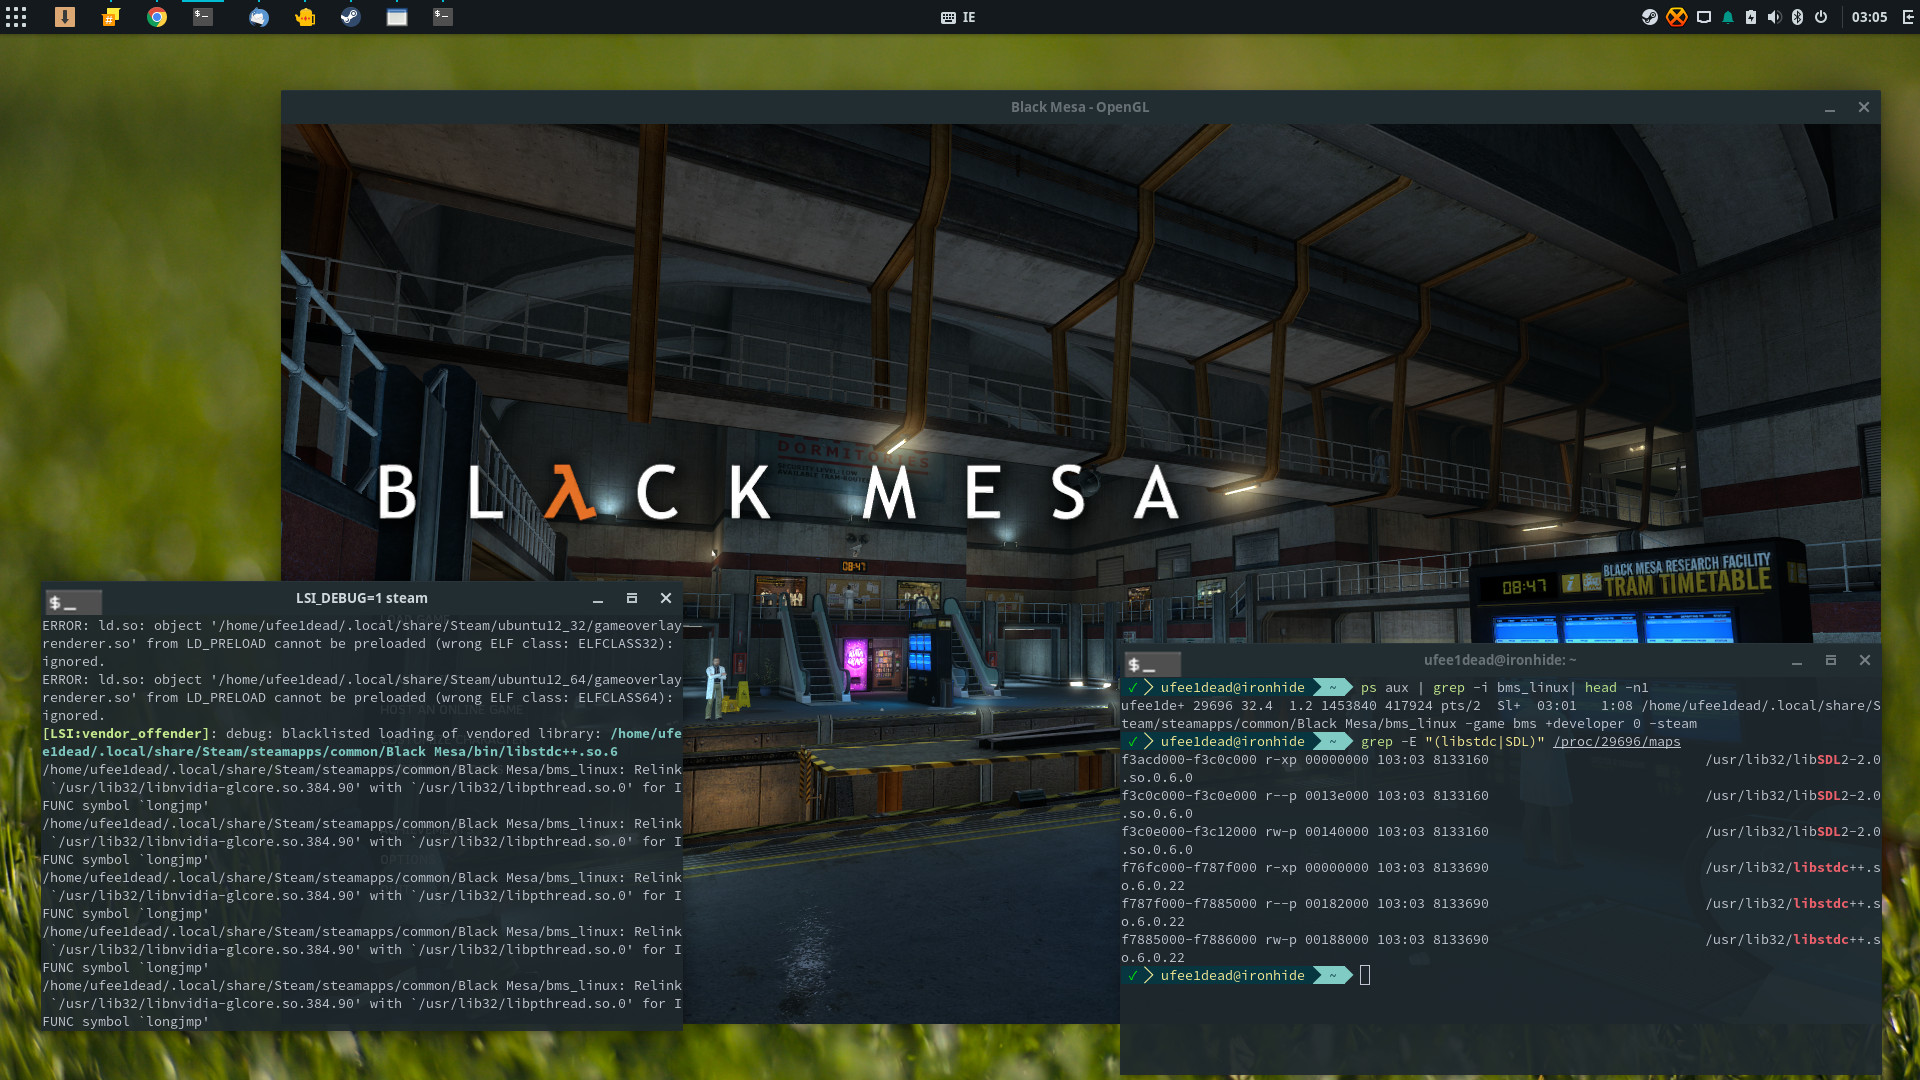 2017/10/Liblsi Intercept Blackmesa